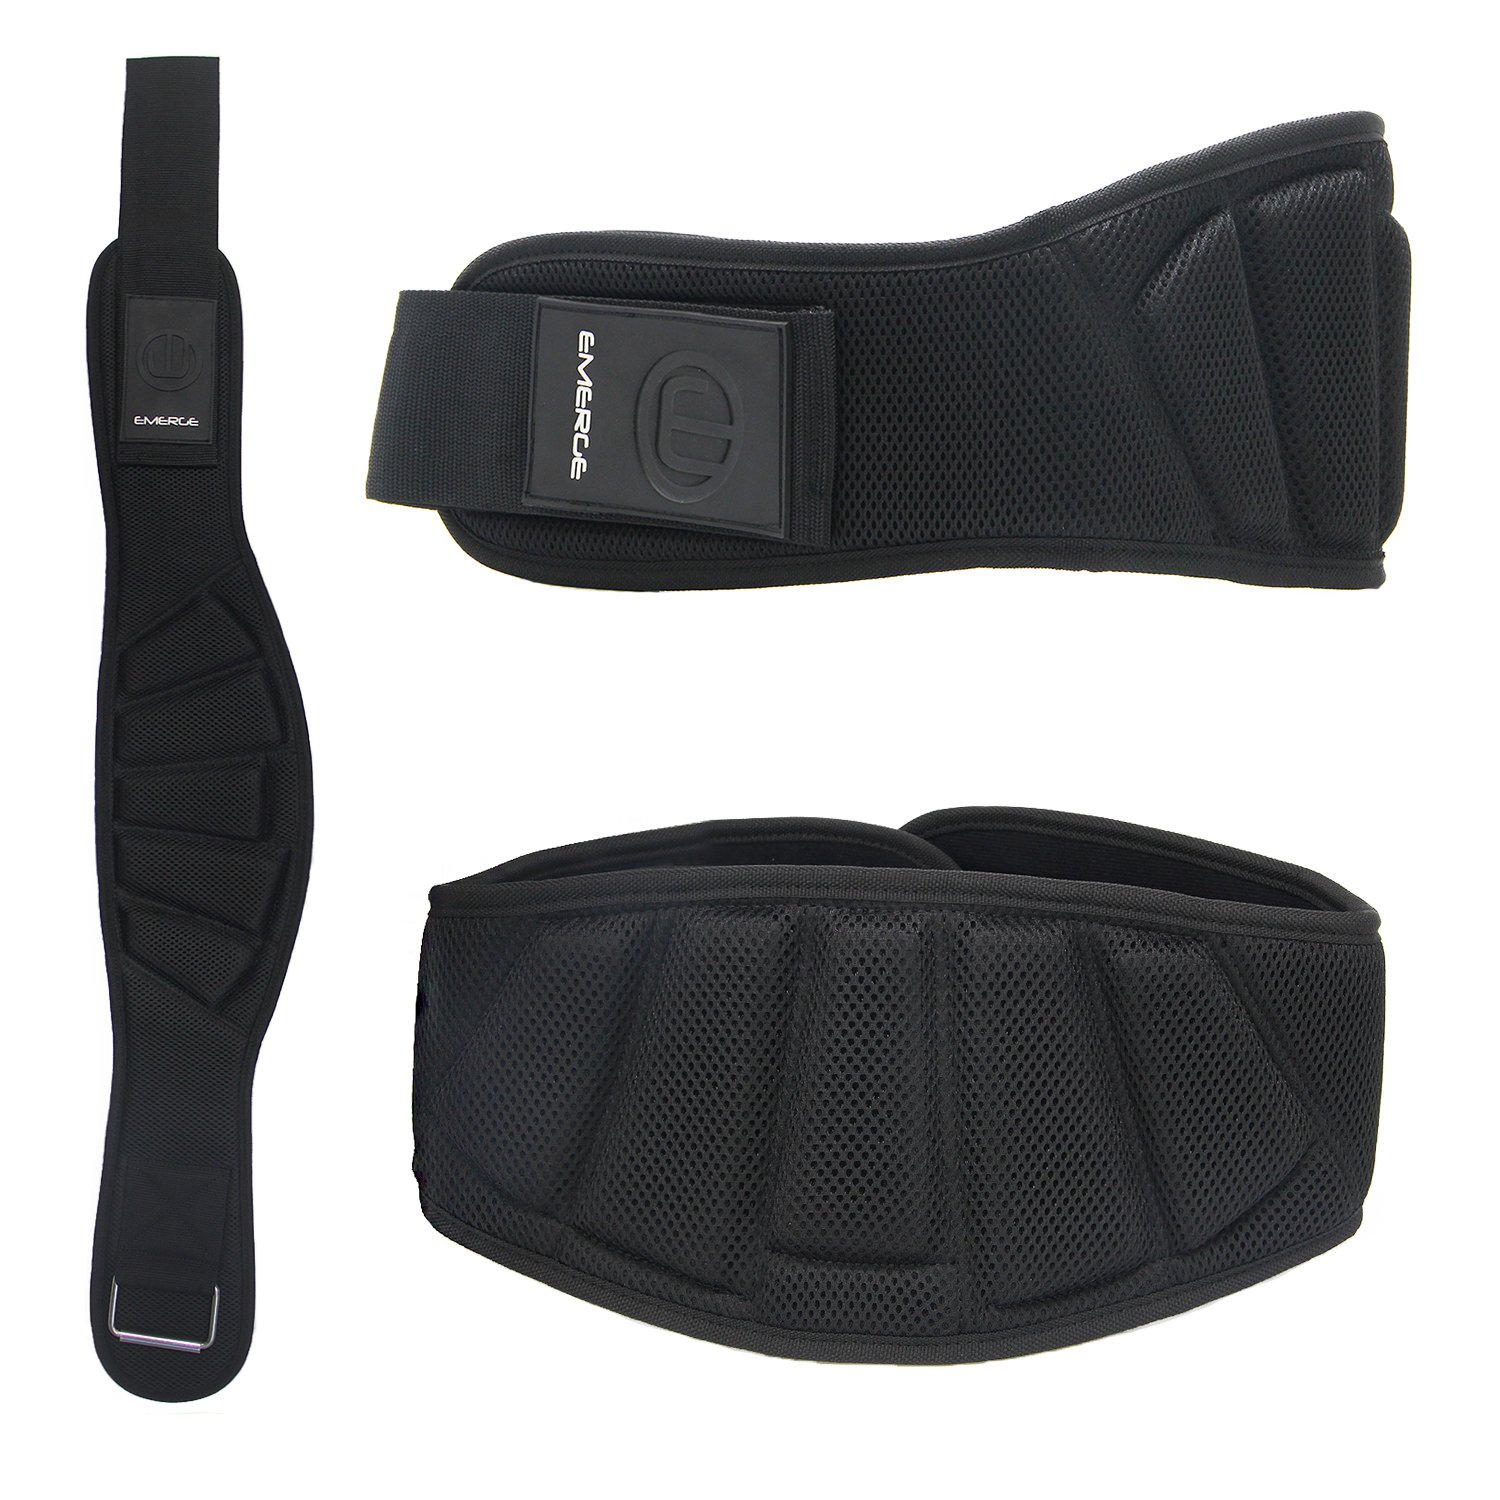 emerge weightlift belt